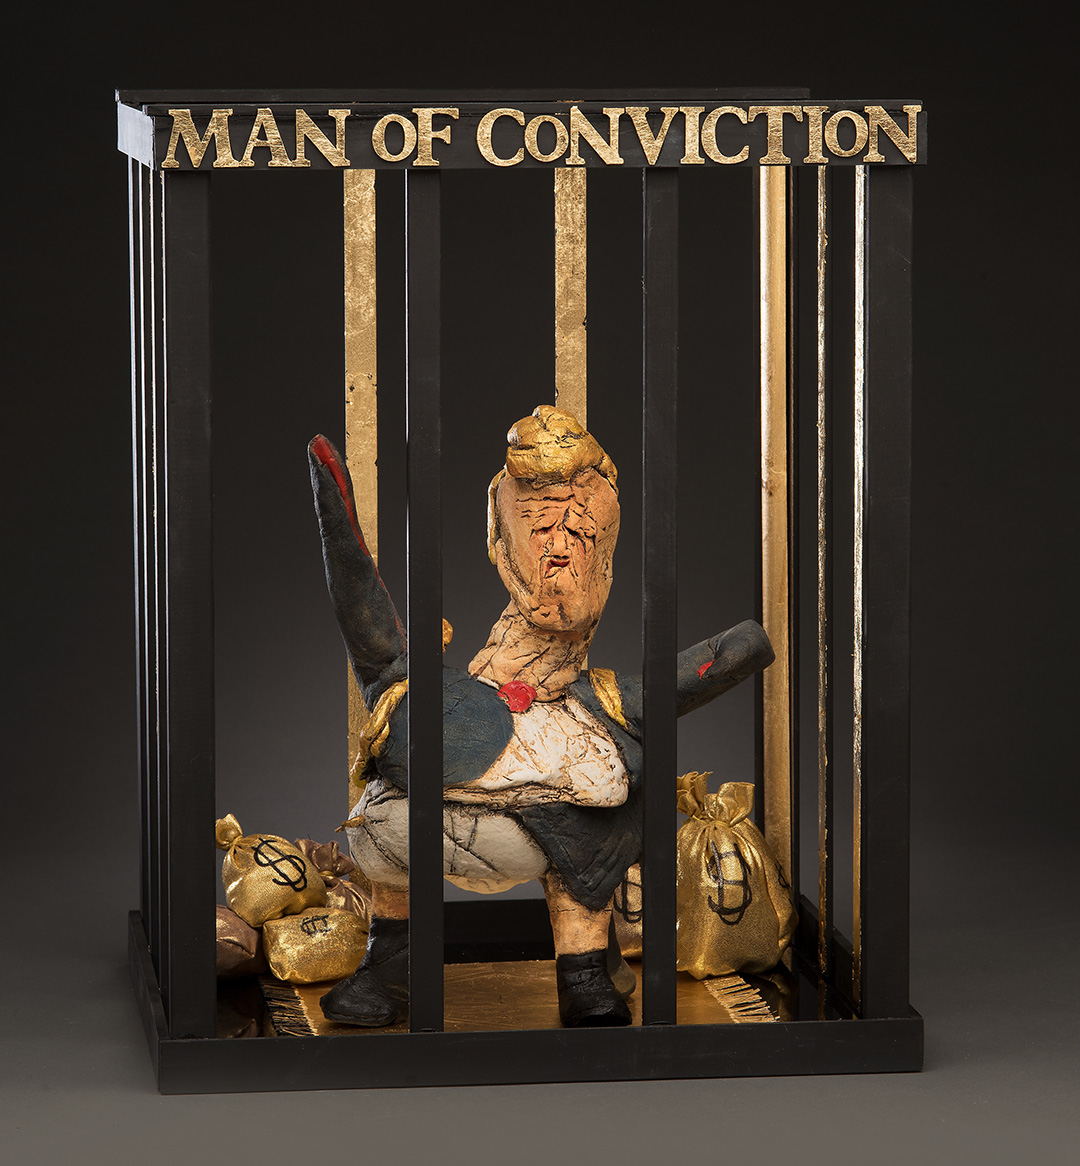 Man of Conviction